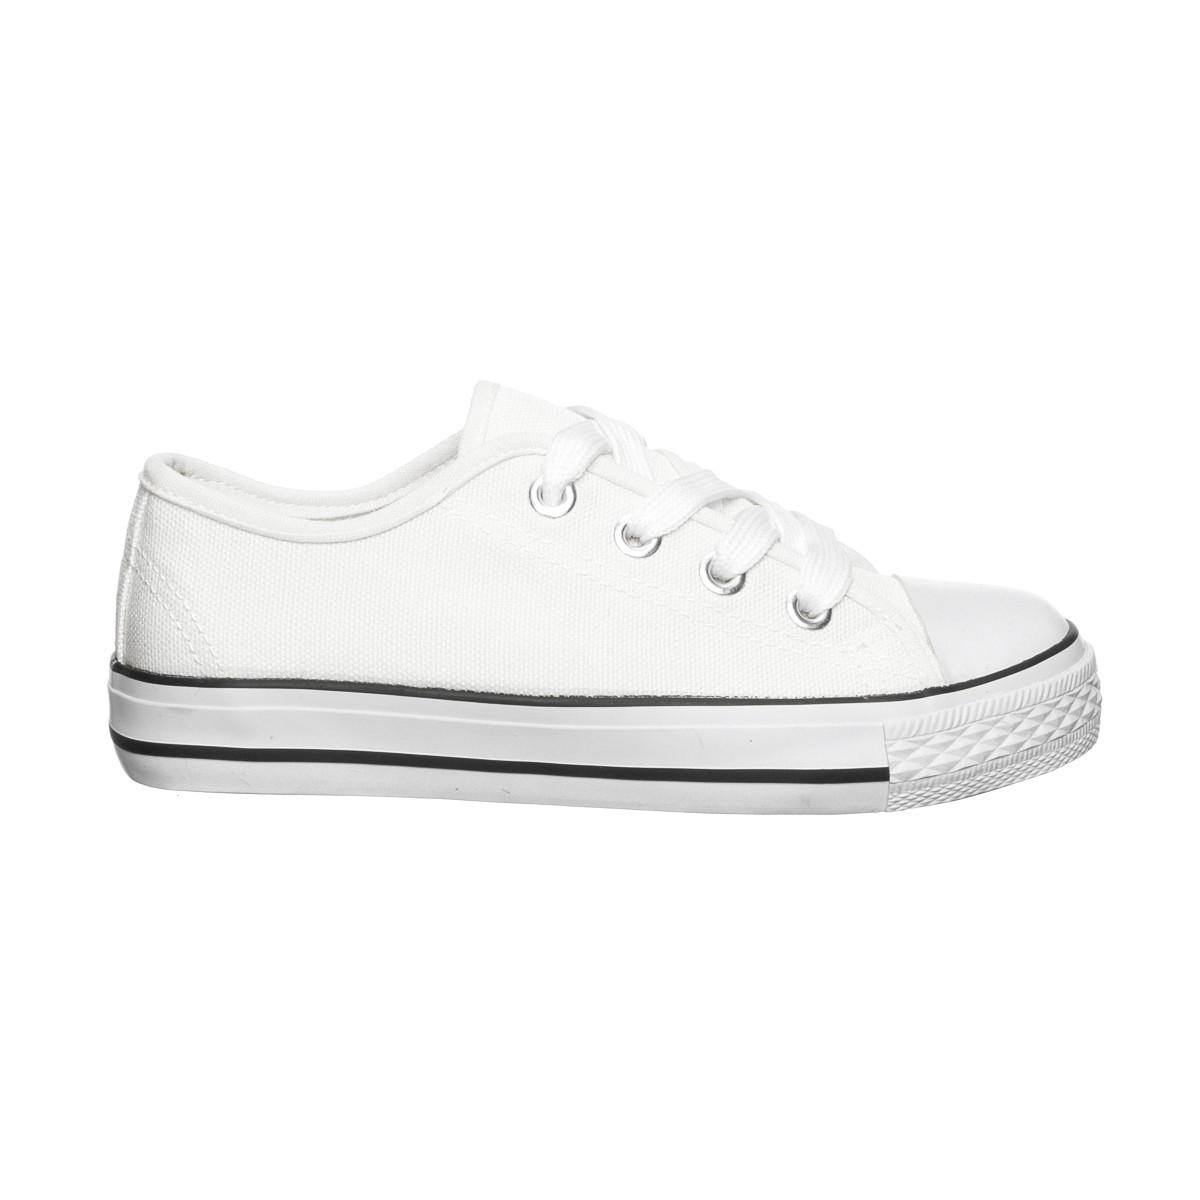 Chaussure toile 26-35 Panther - Blanc